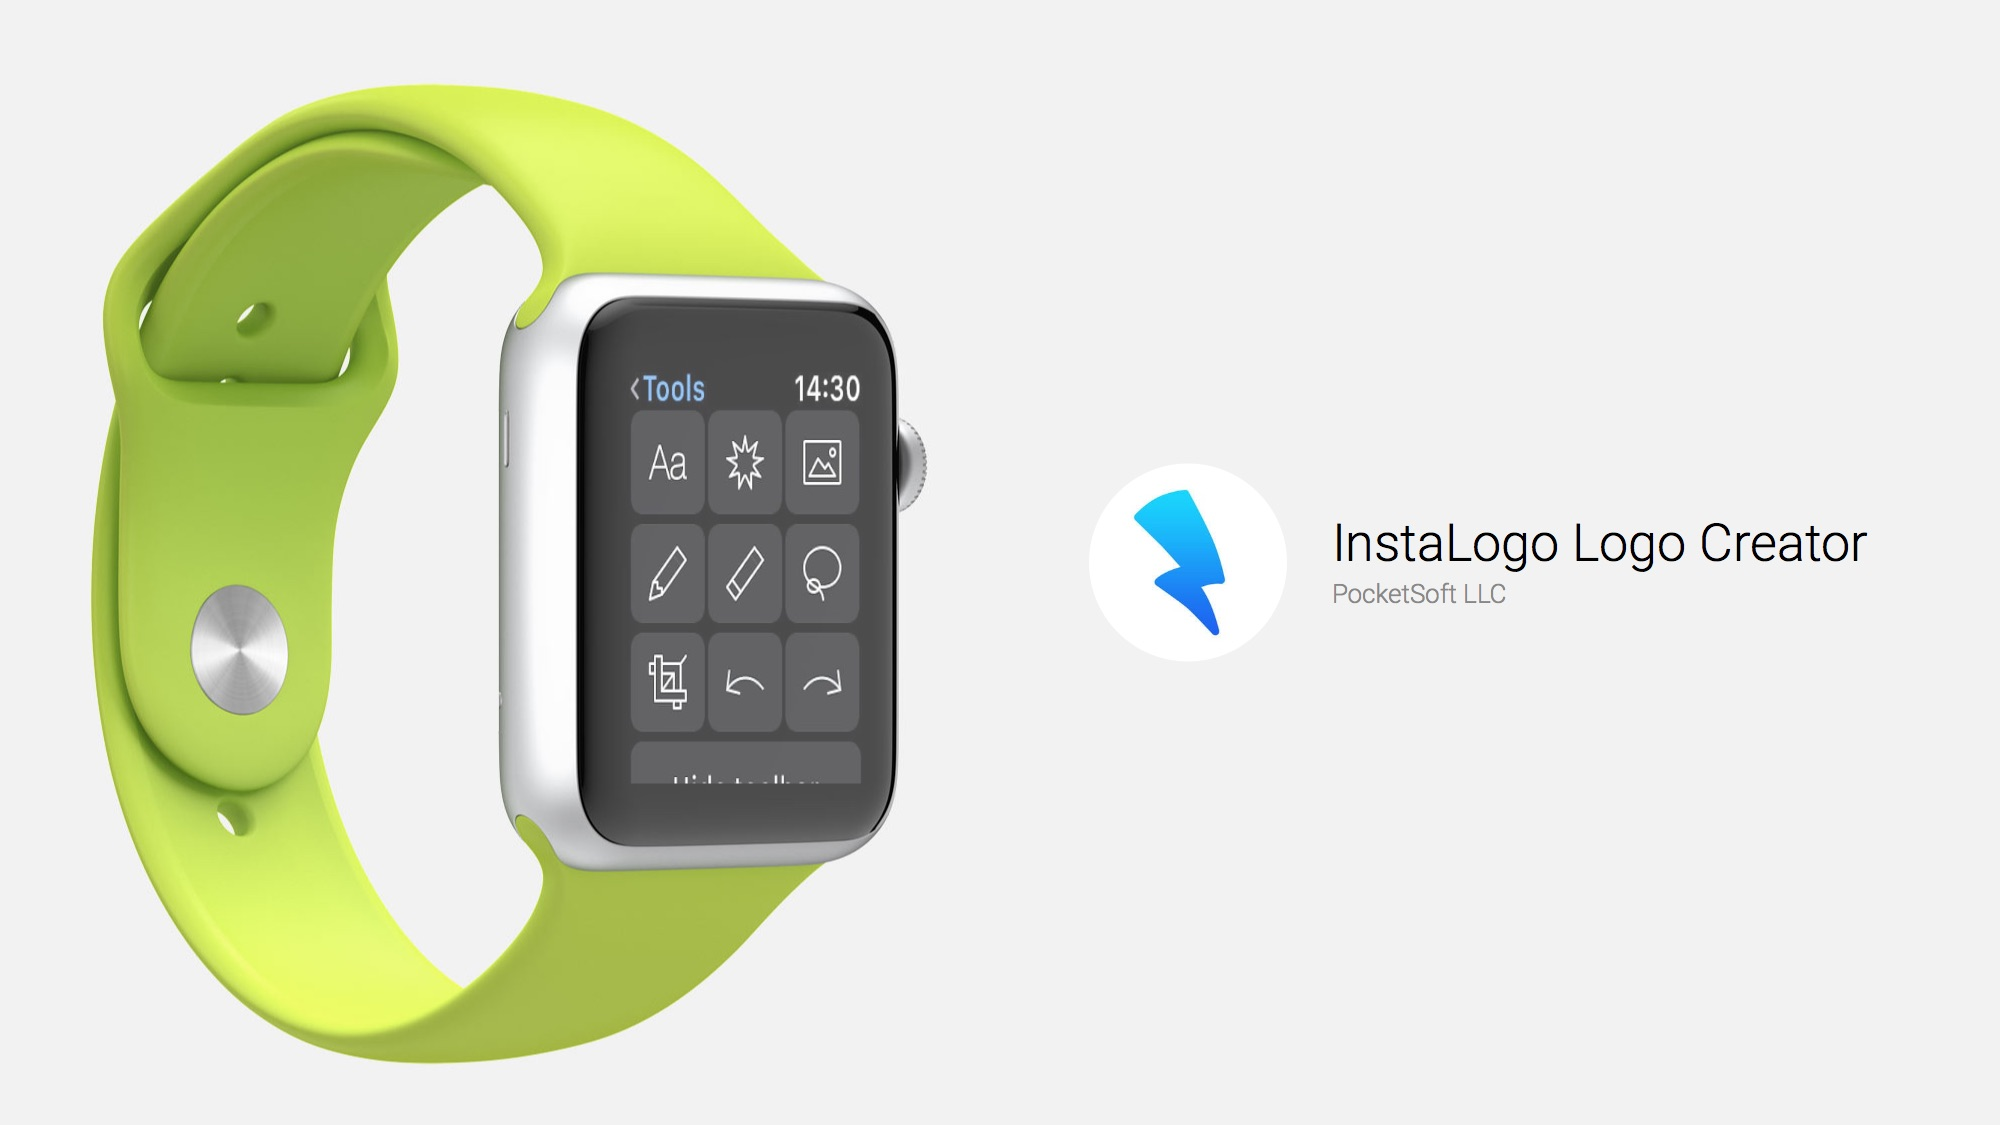 Use Your Apple Watch As a Second Display With InstaLogo